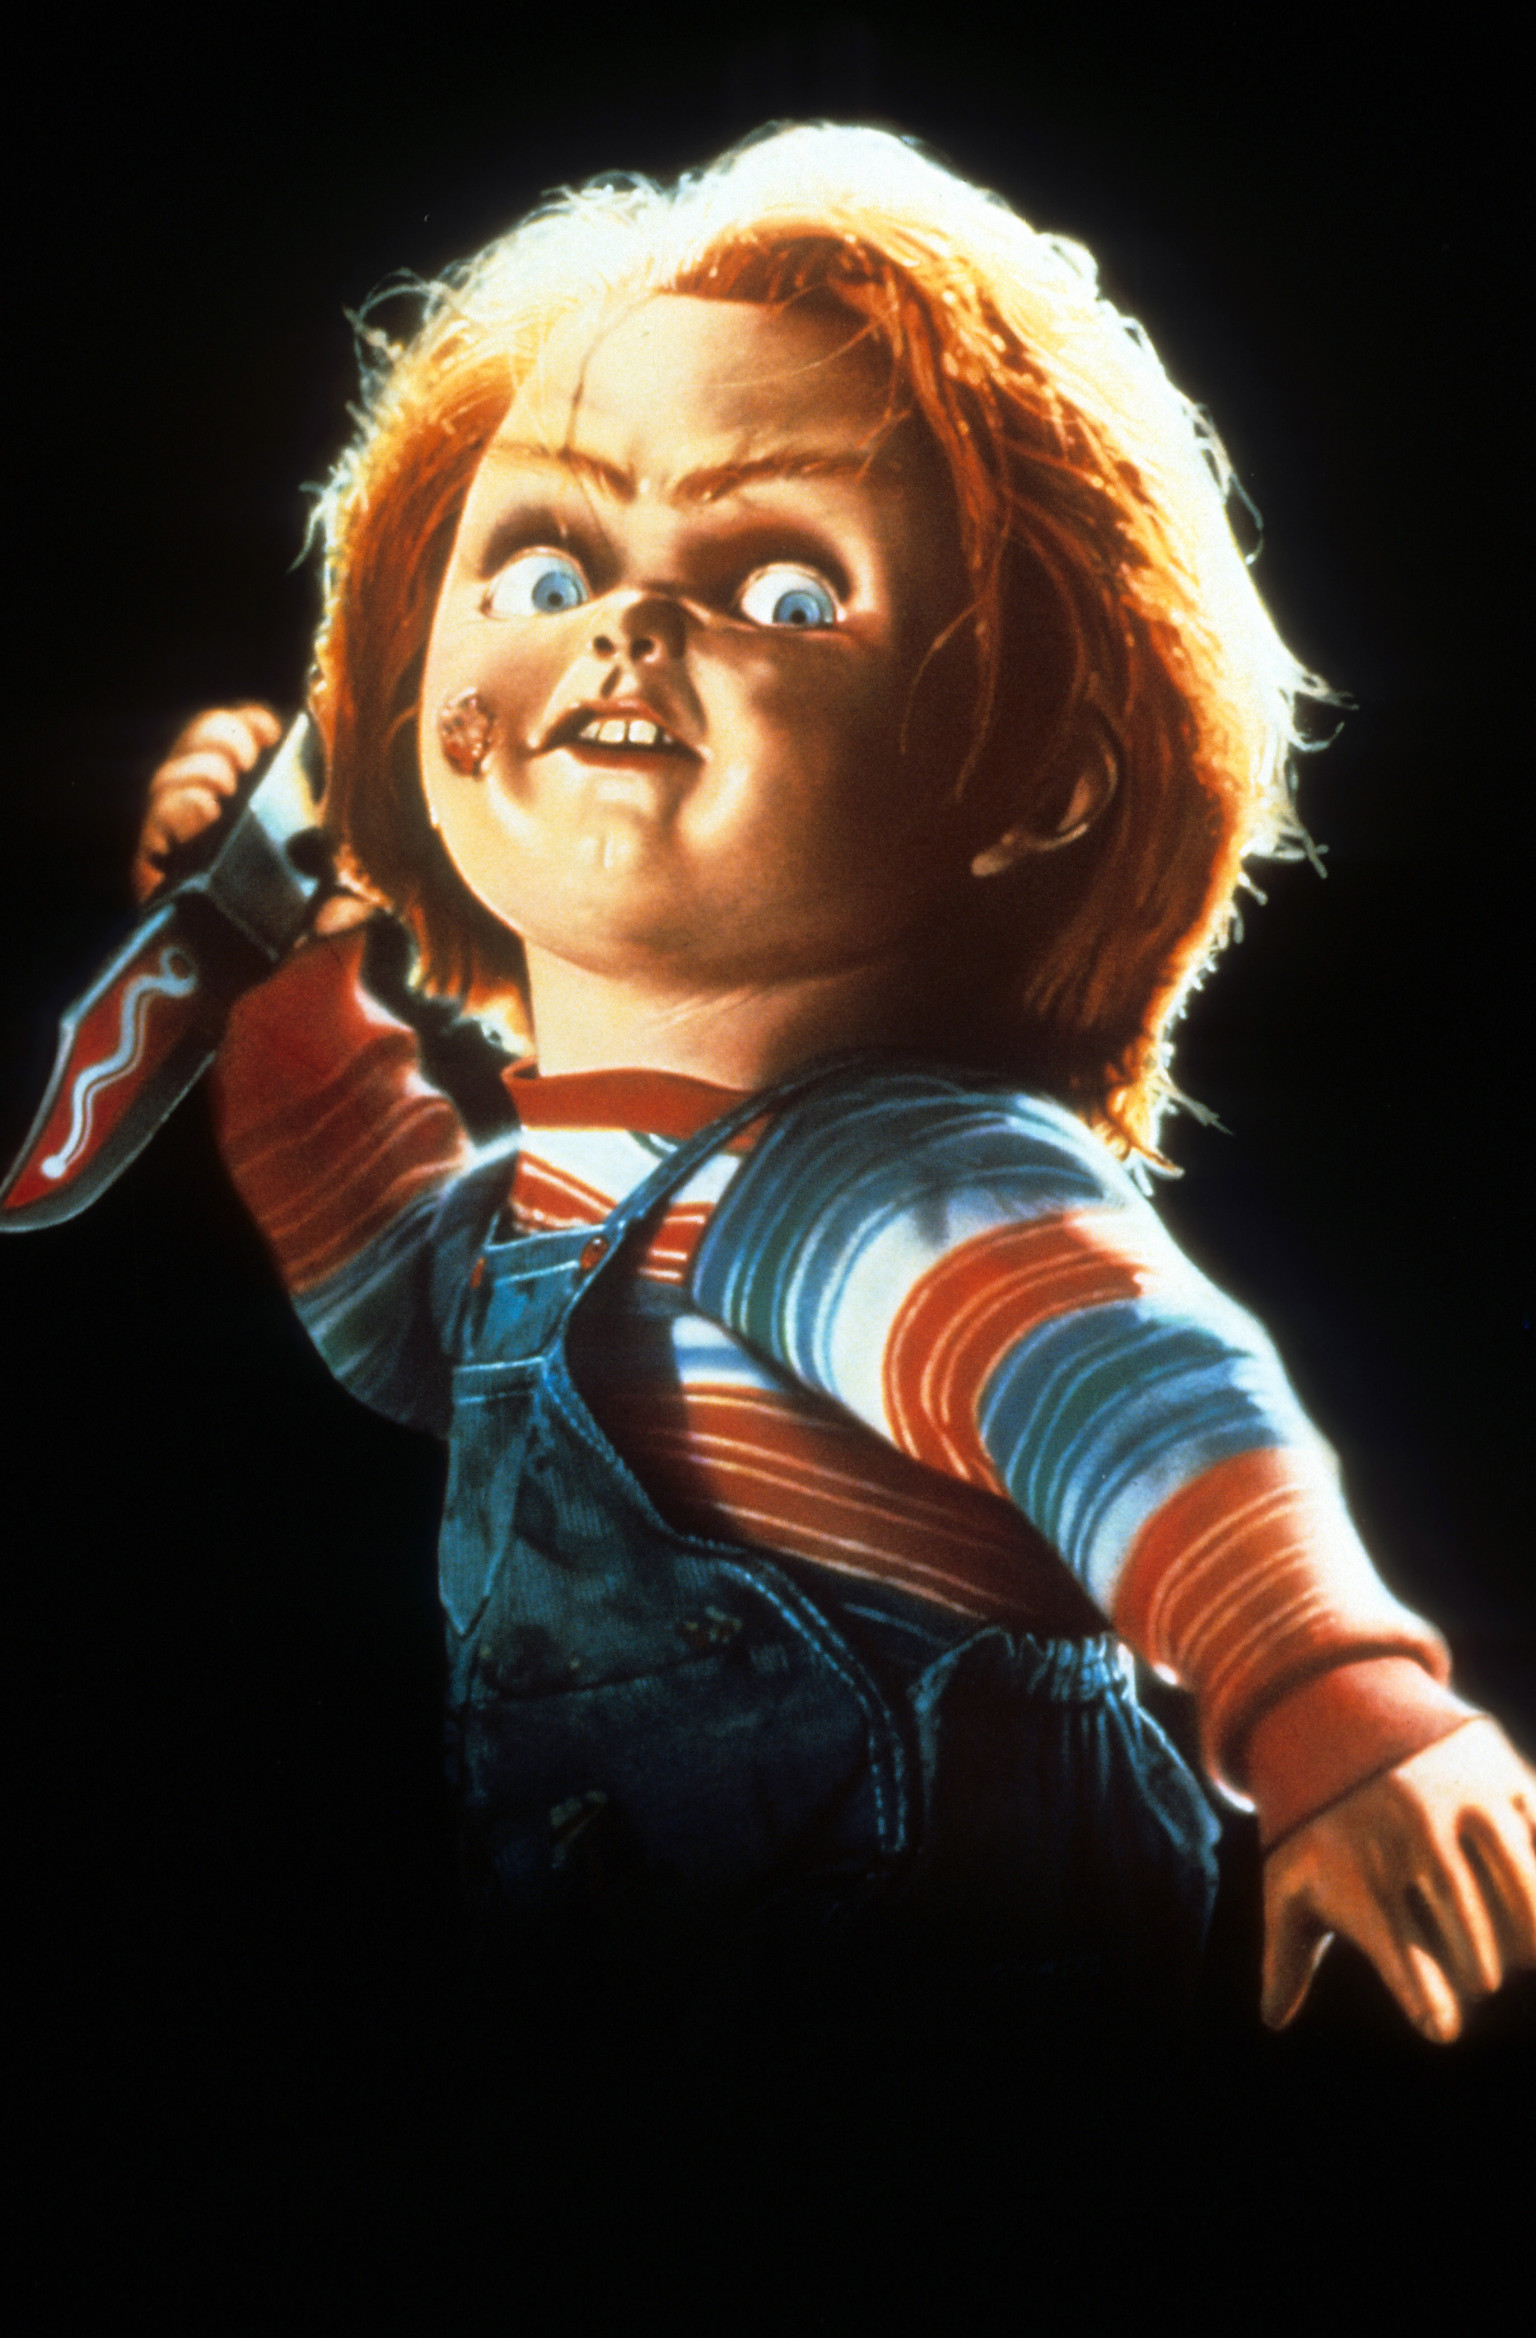 New York State Sales Tax Rate >> 'Curse Of Chucky' Trailer: Sixth Entry In 'Child's Play ...